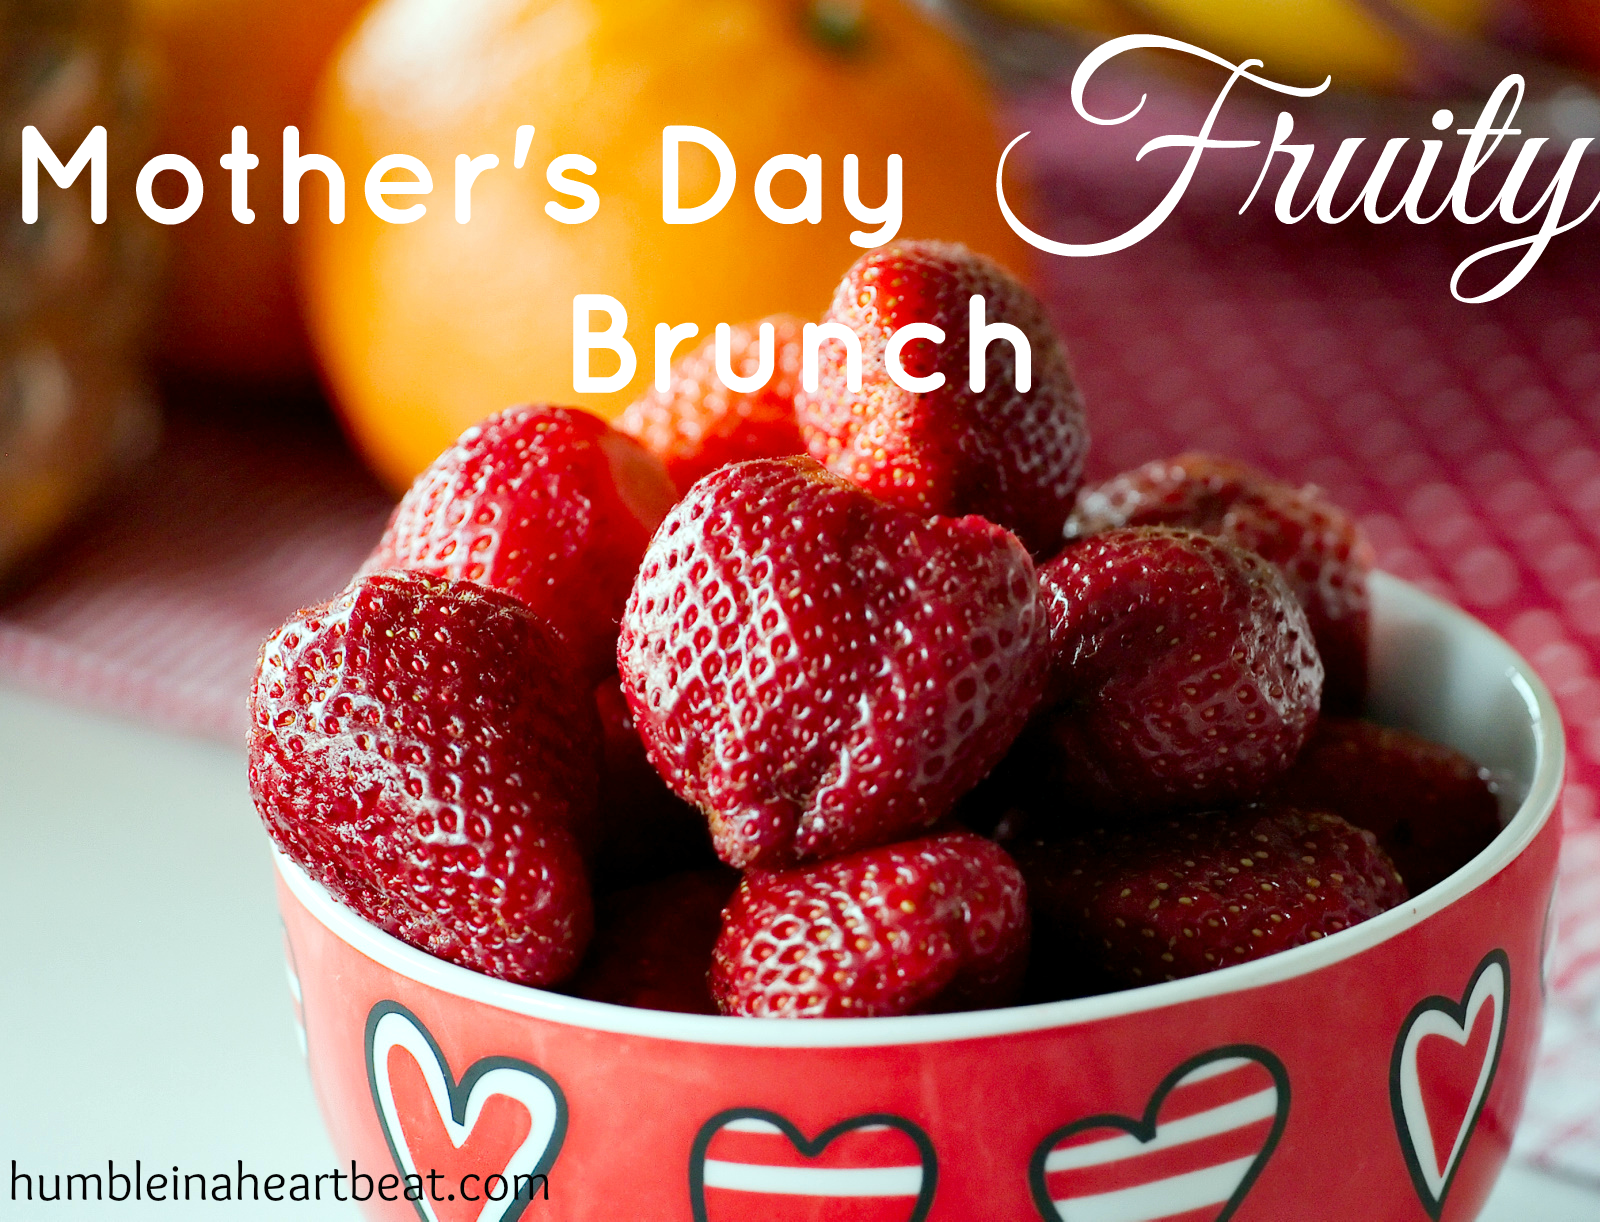 Fruity Mother's Day Brunch